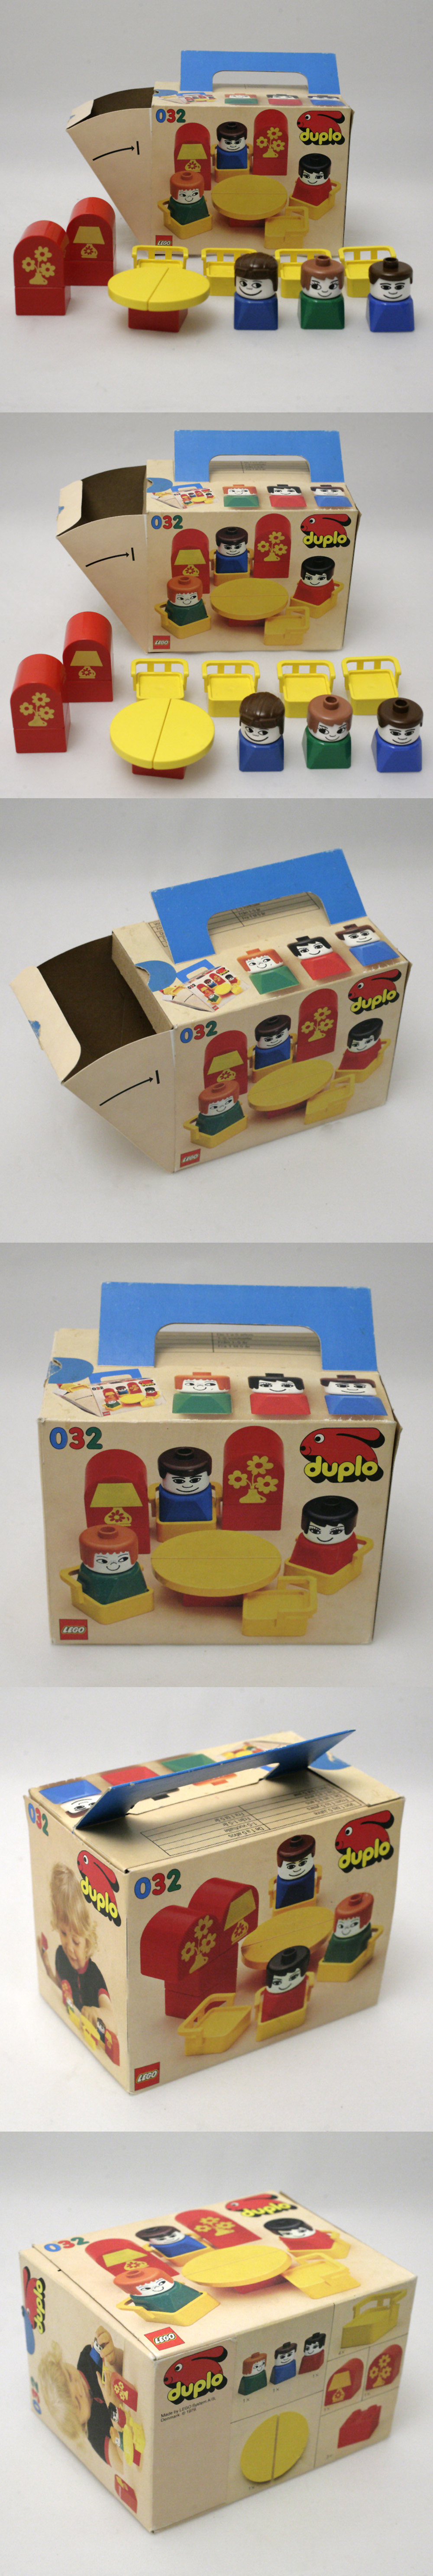 1970's Vintage Lego Duplo Set 032 NOW FOR SALE on EBAY.DE